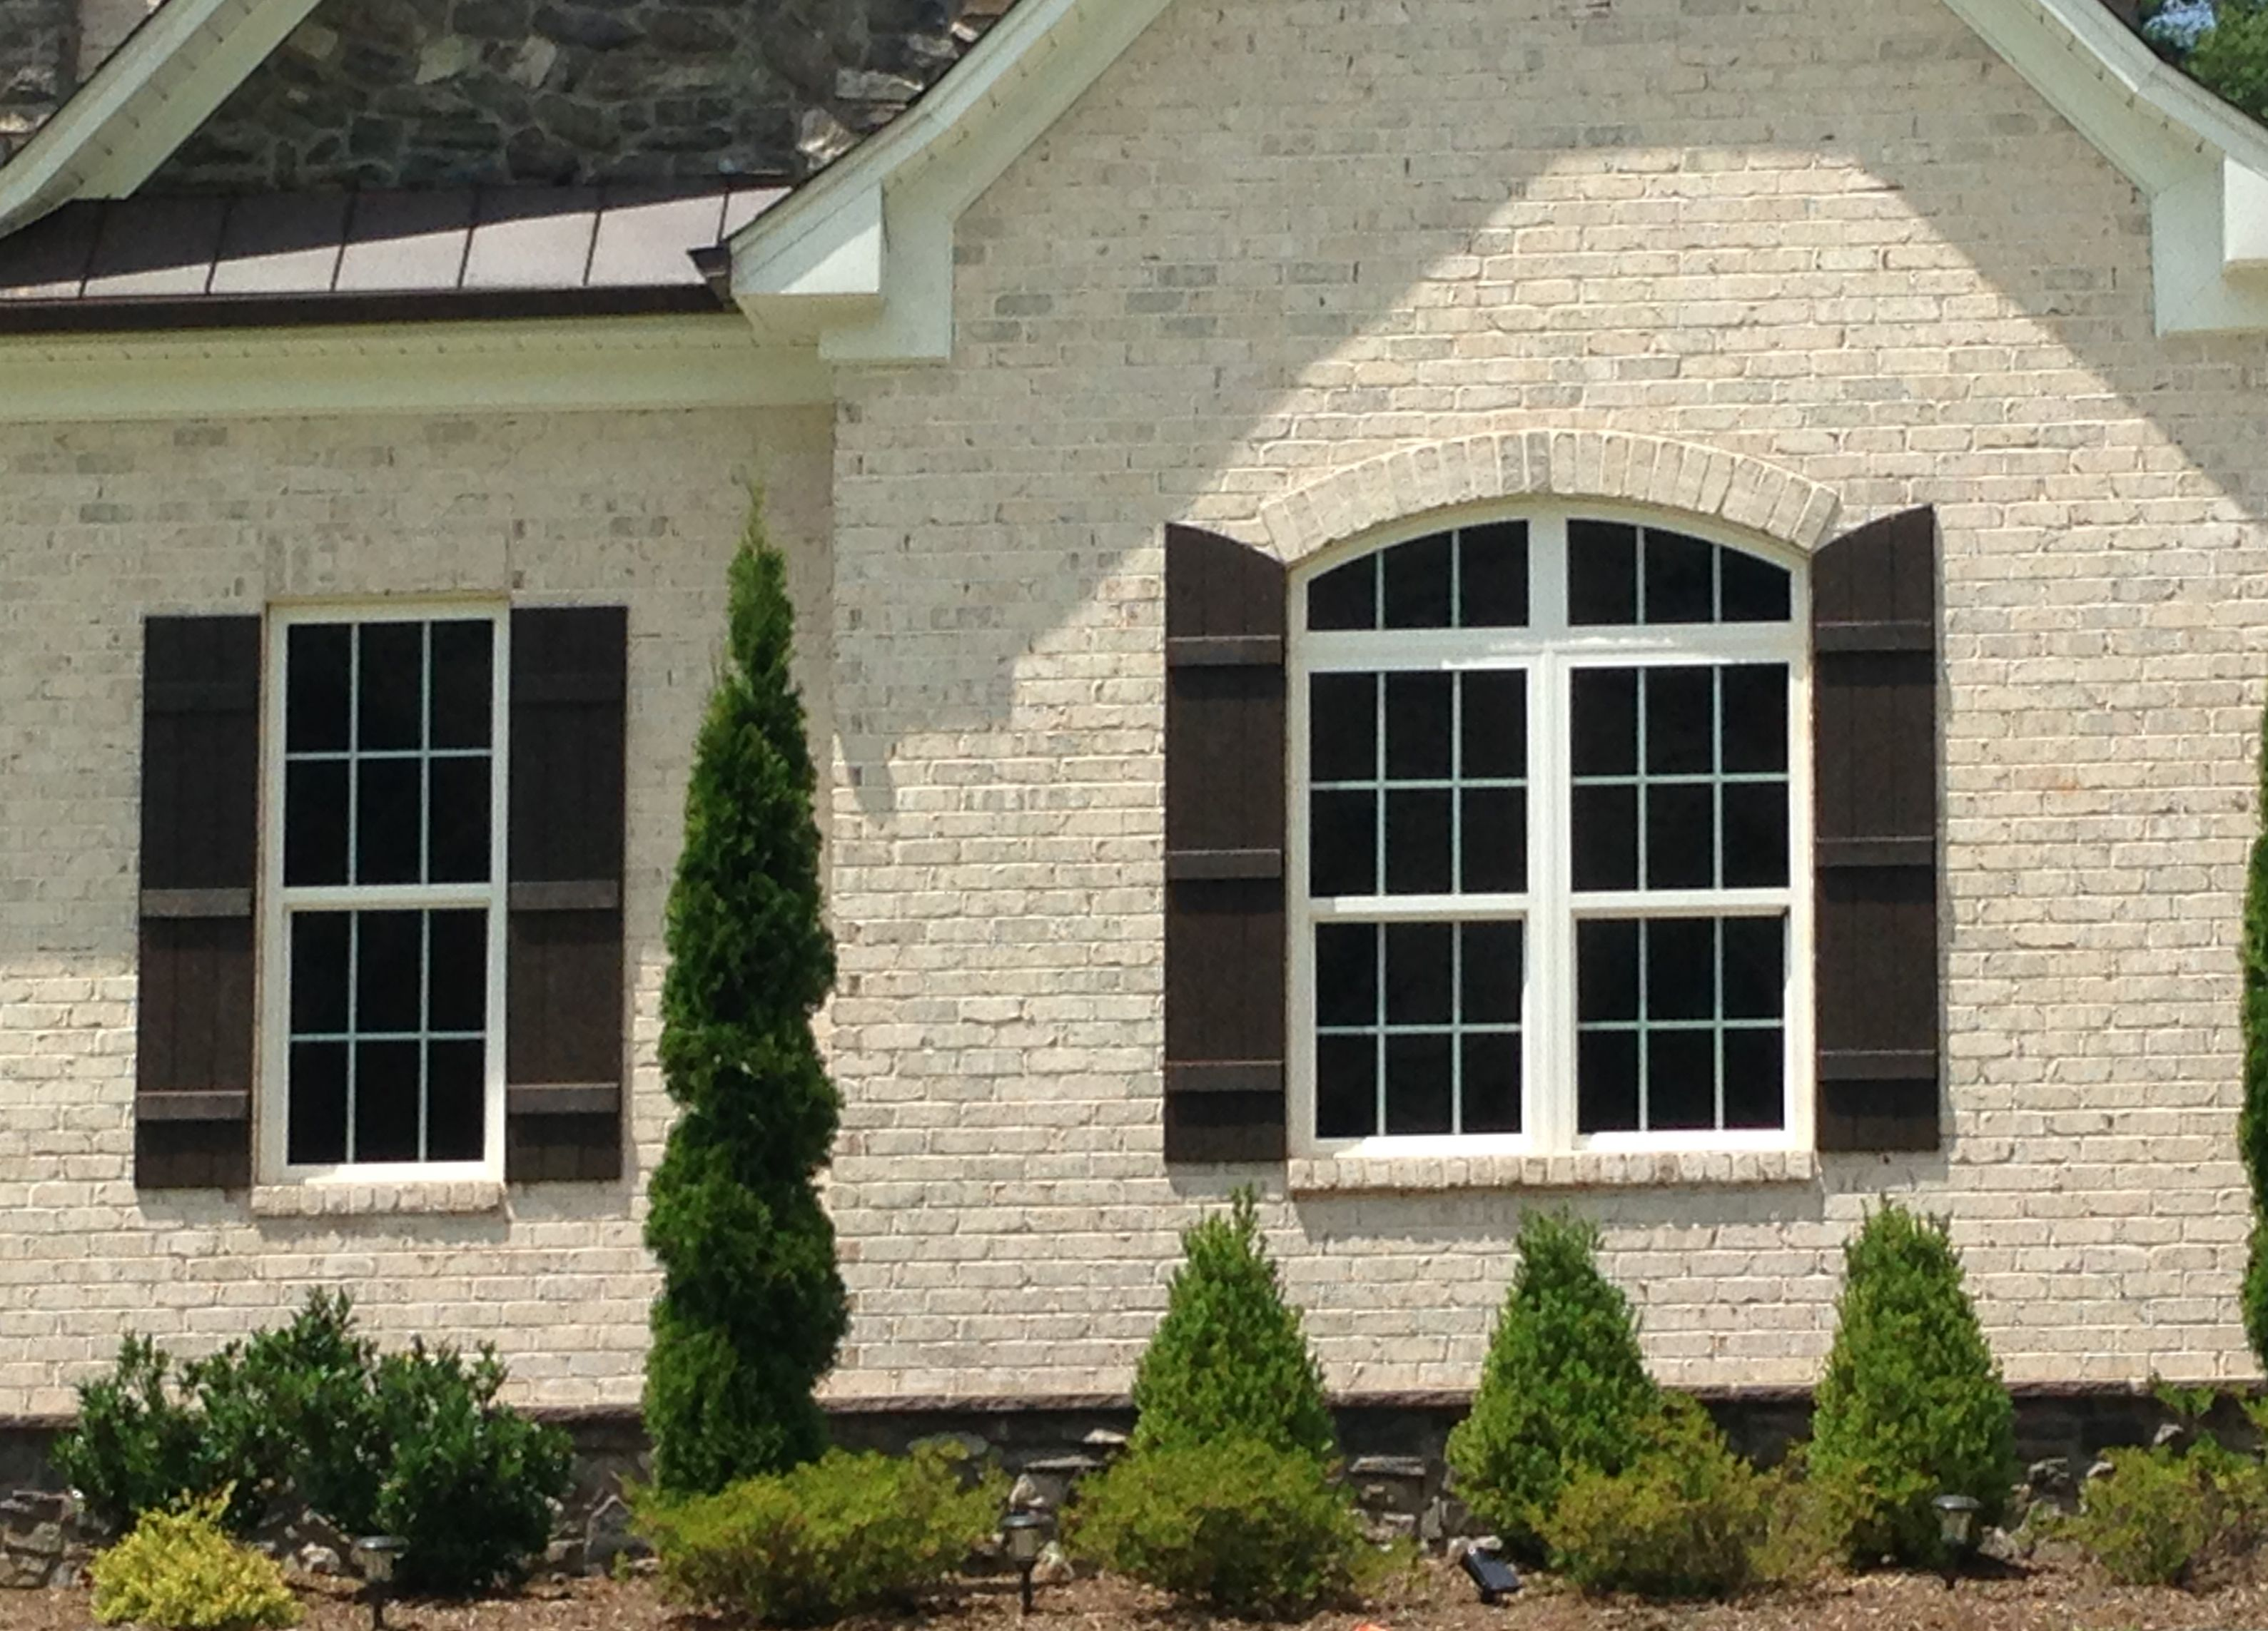 White Chesapeake Pearl Brick With White Mortar Looks Great With Dark Brown Shutters Mortar